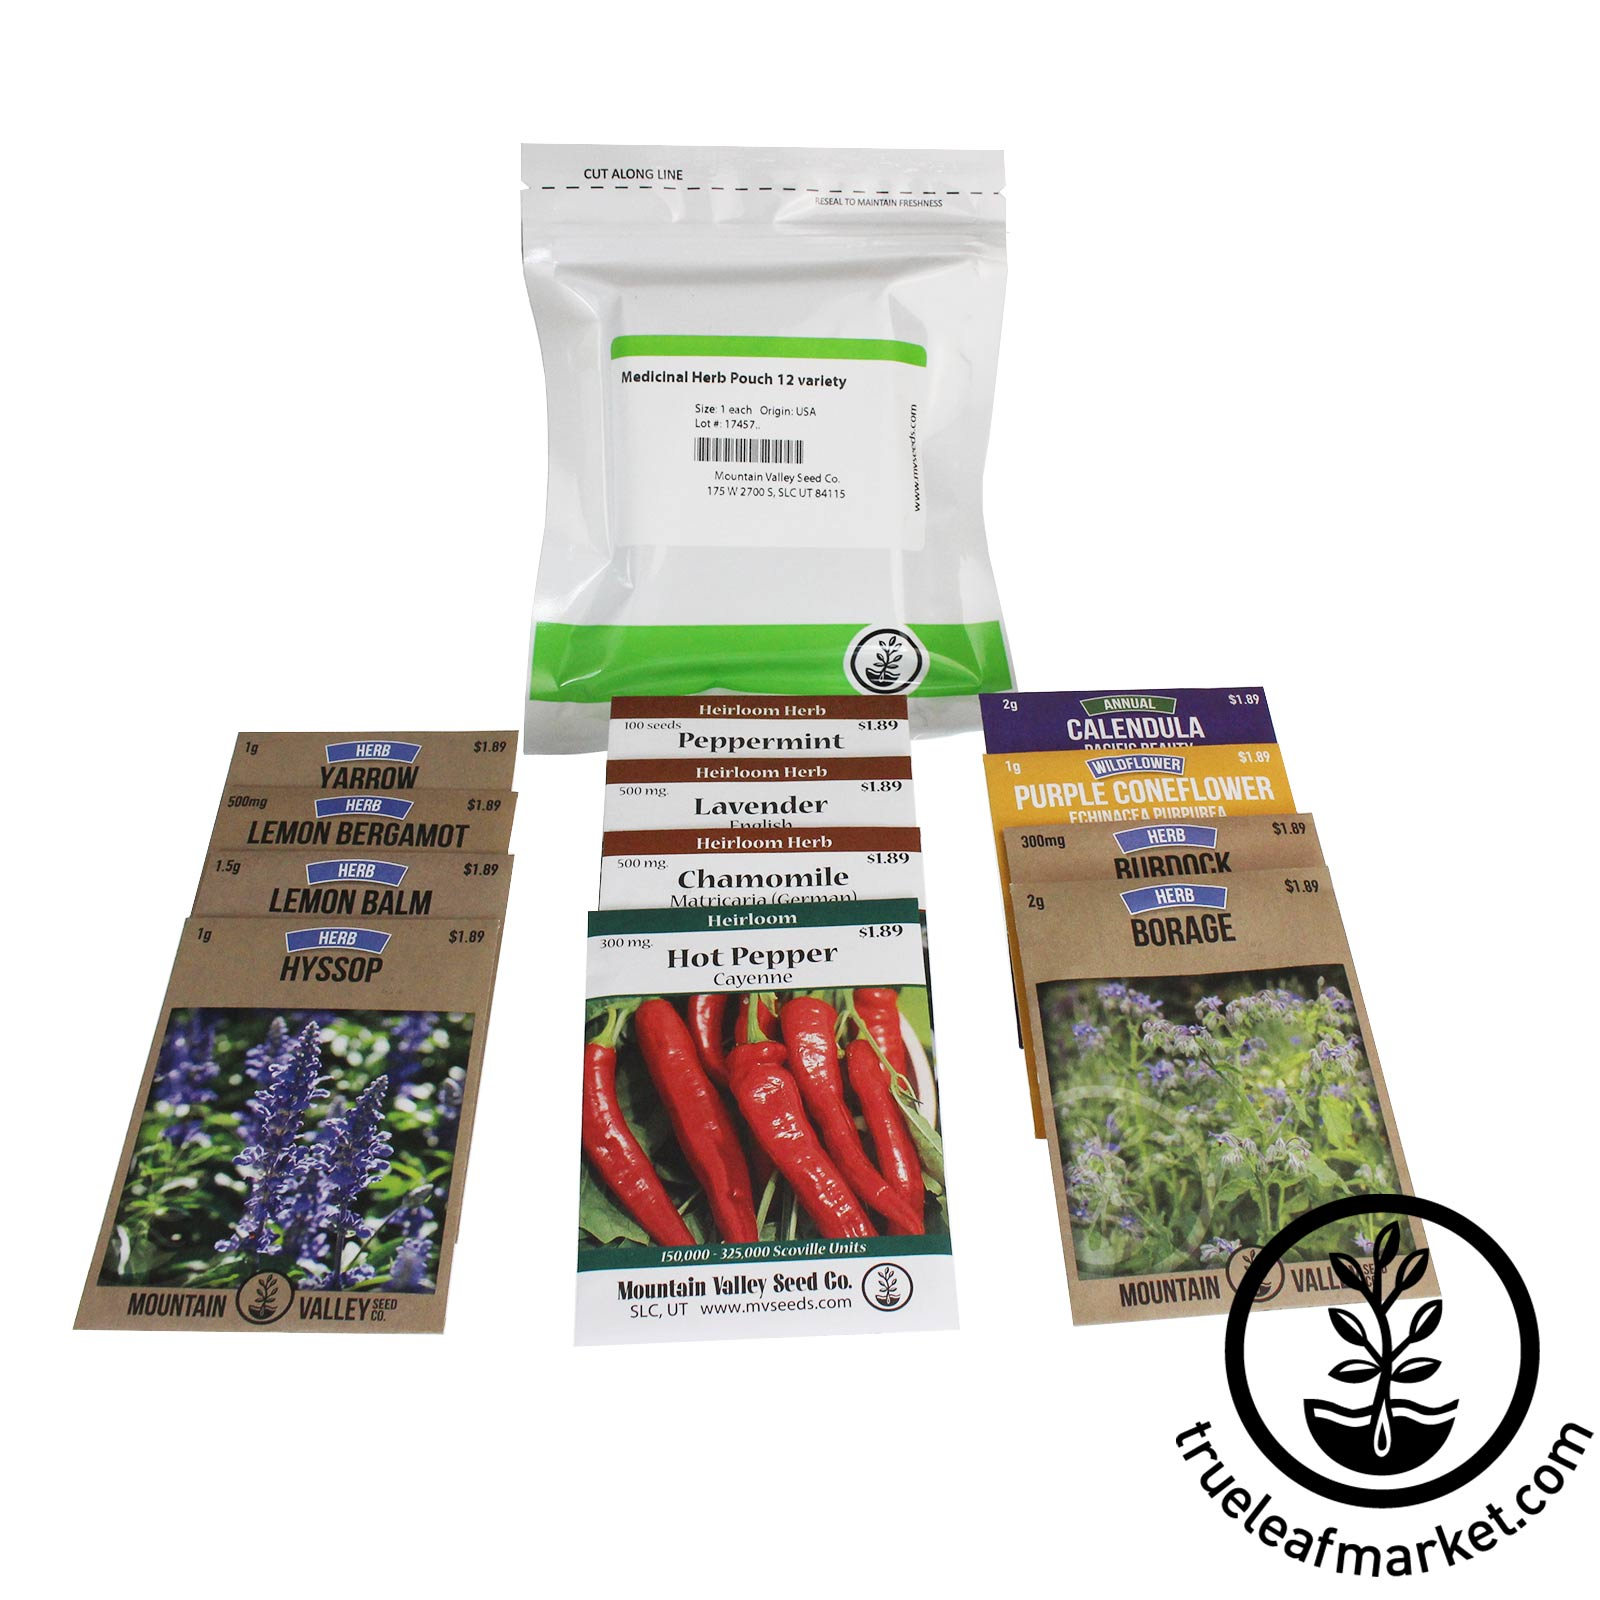 Medicinal Herb Seed Assortment